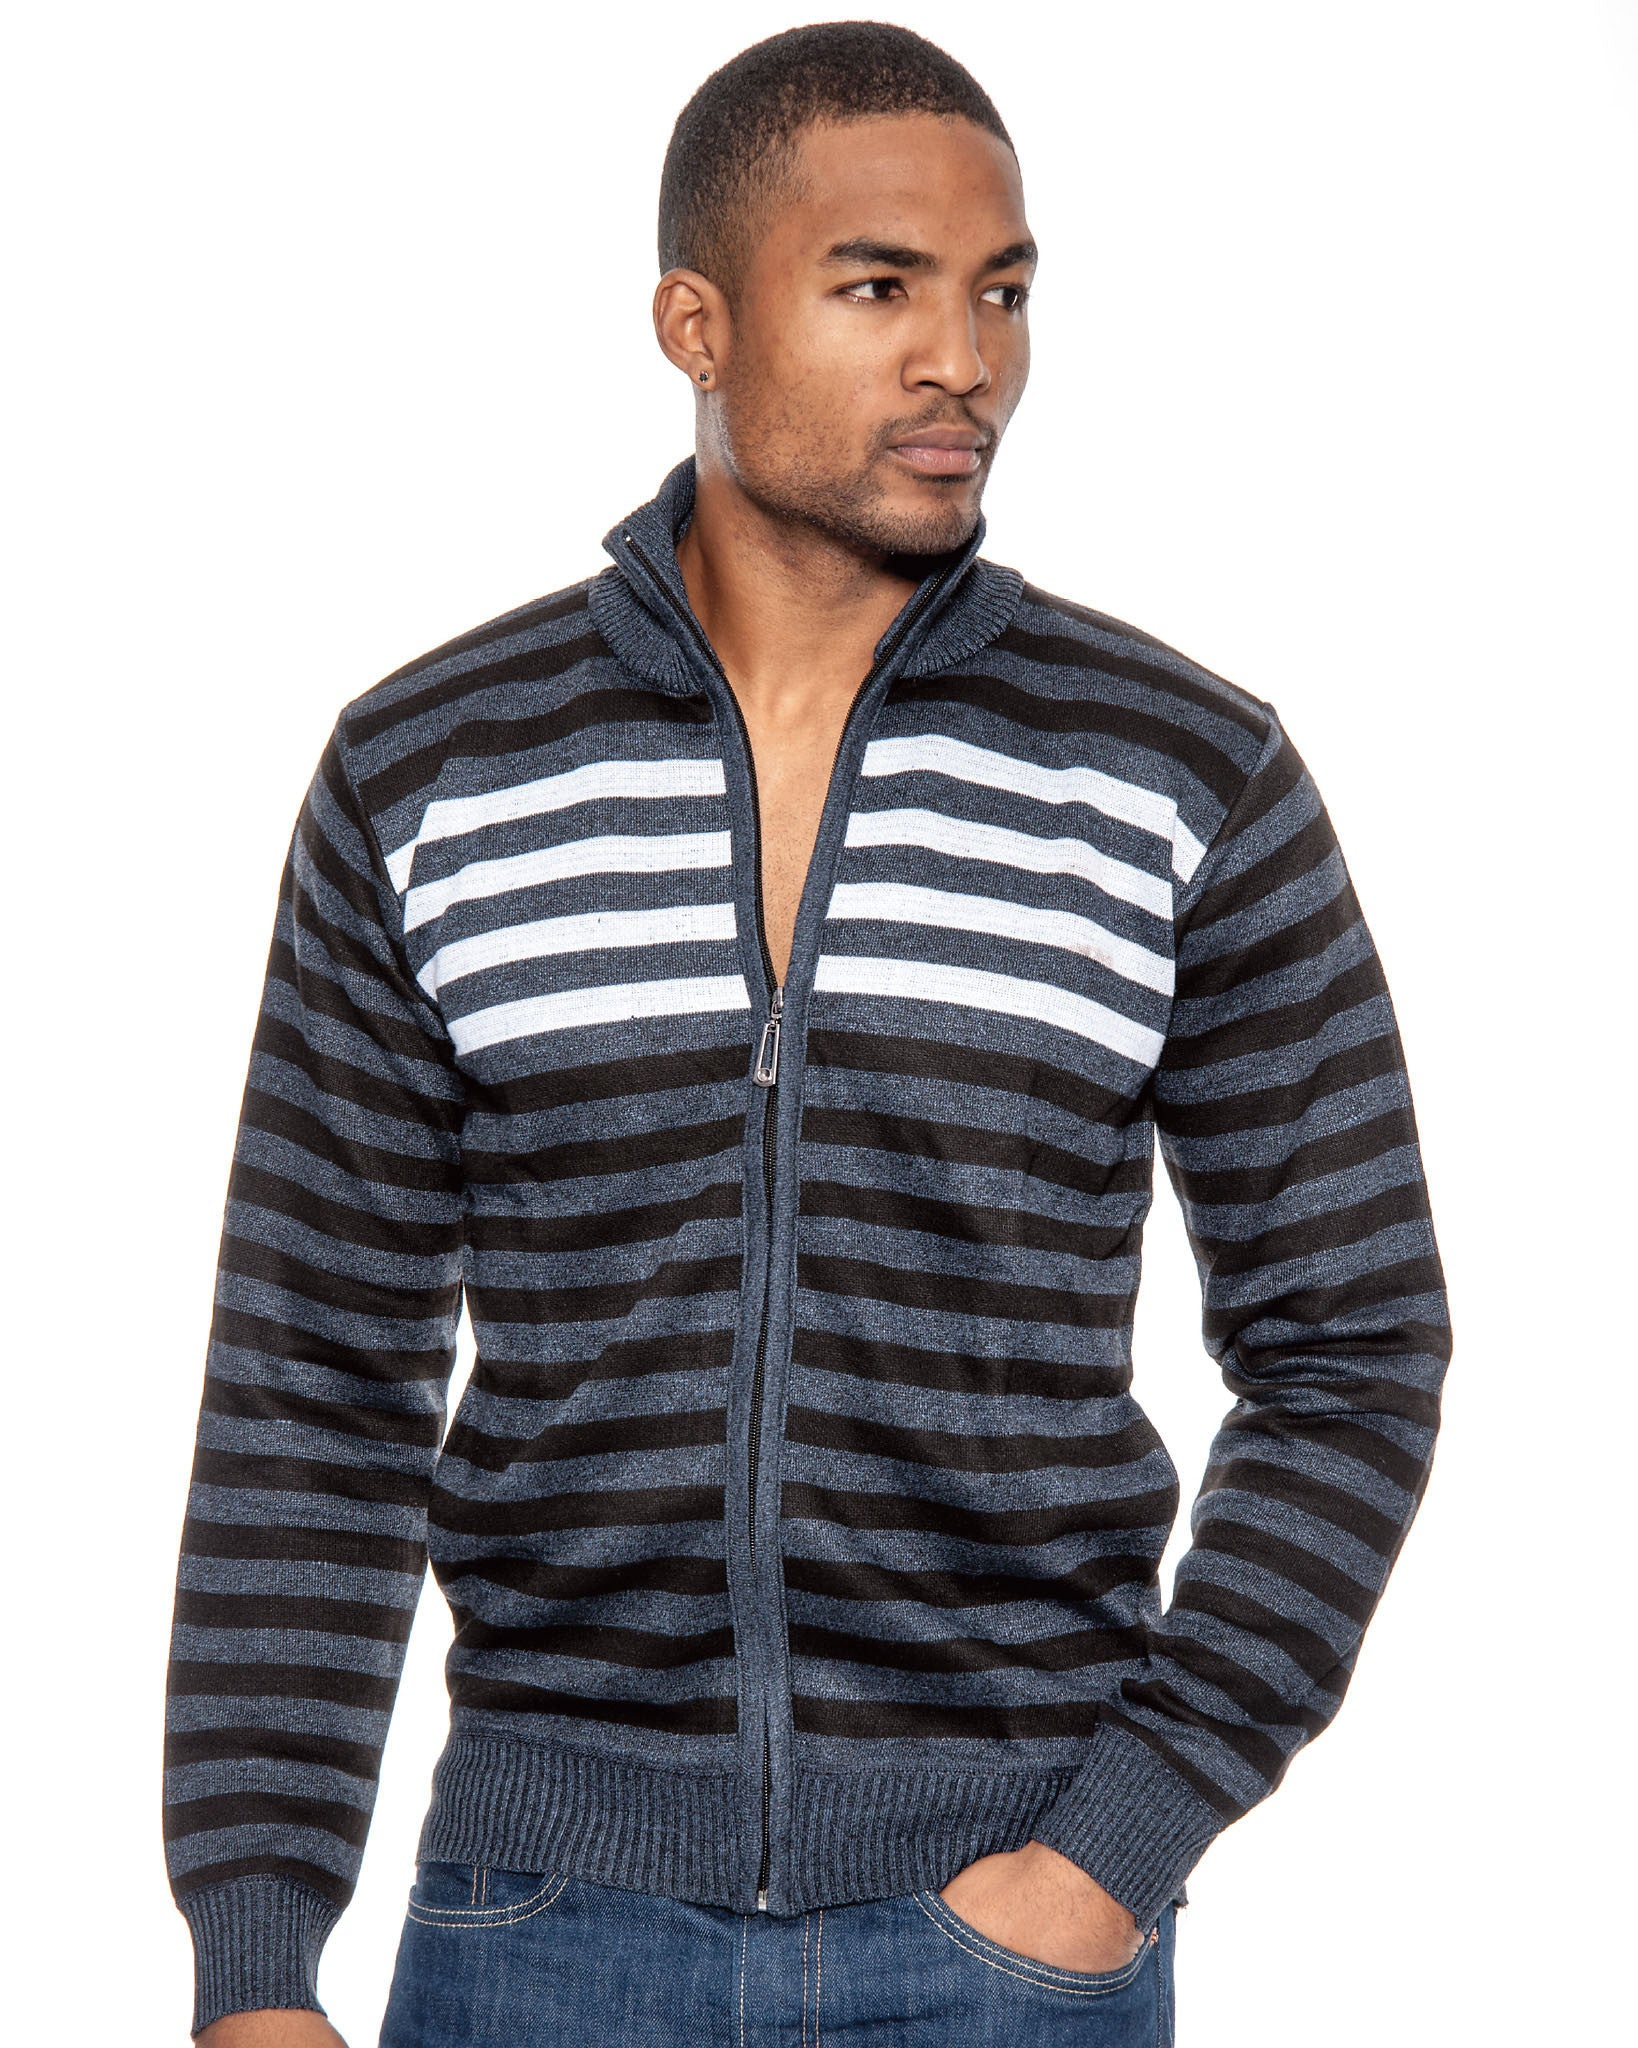 True Rock Mens Striped Full Zipper Knit Sweater Jacket | Navy Blue Black White,Sweaters,True Rock - Discount Divas